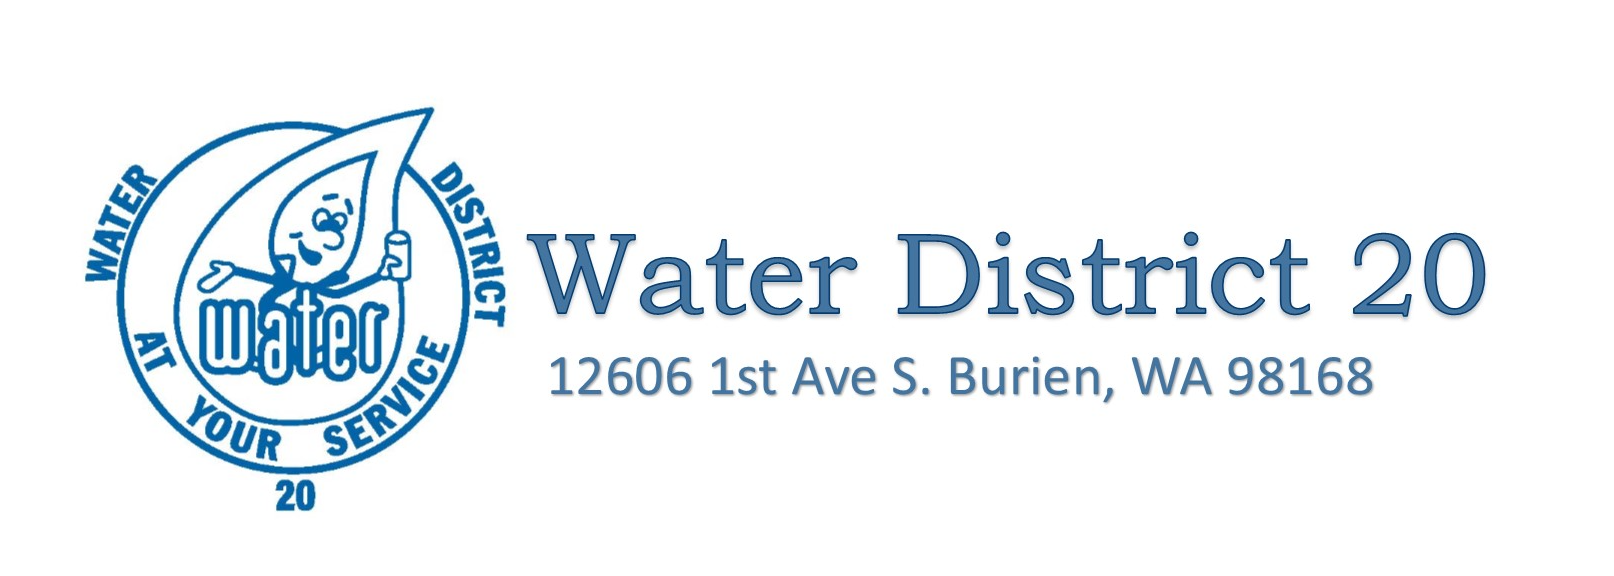 King County Water District #20